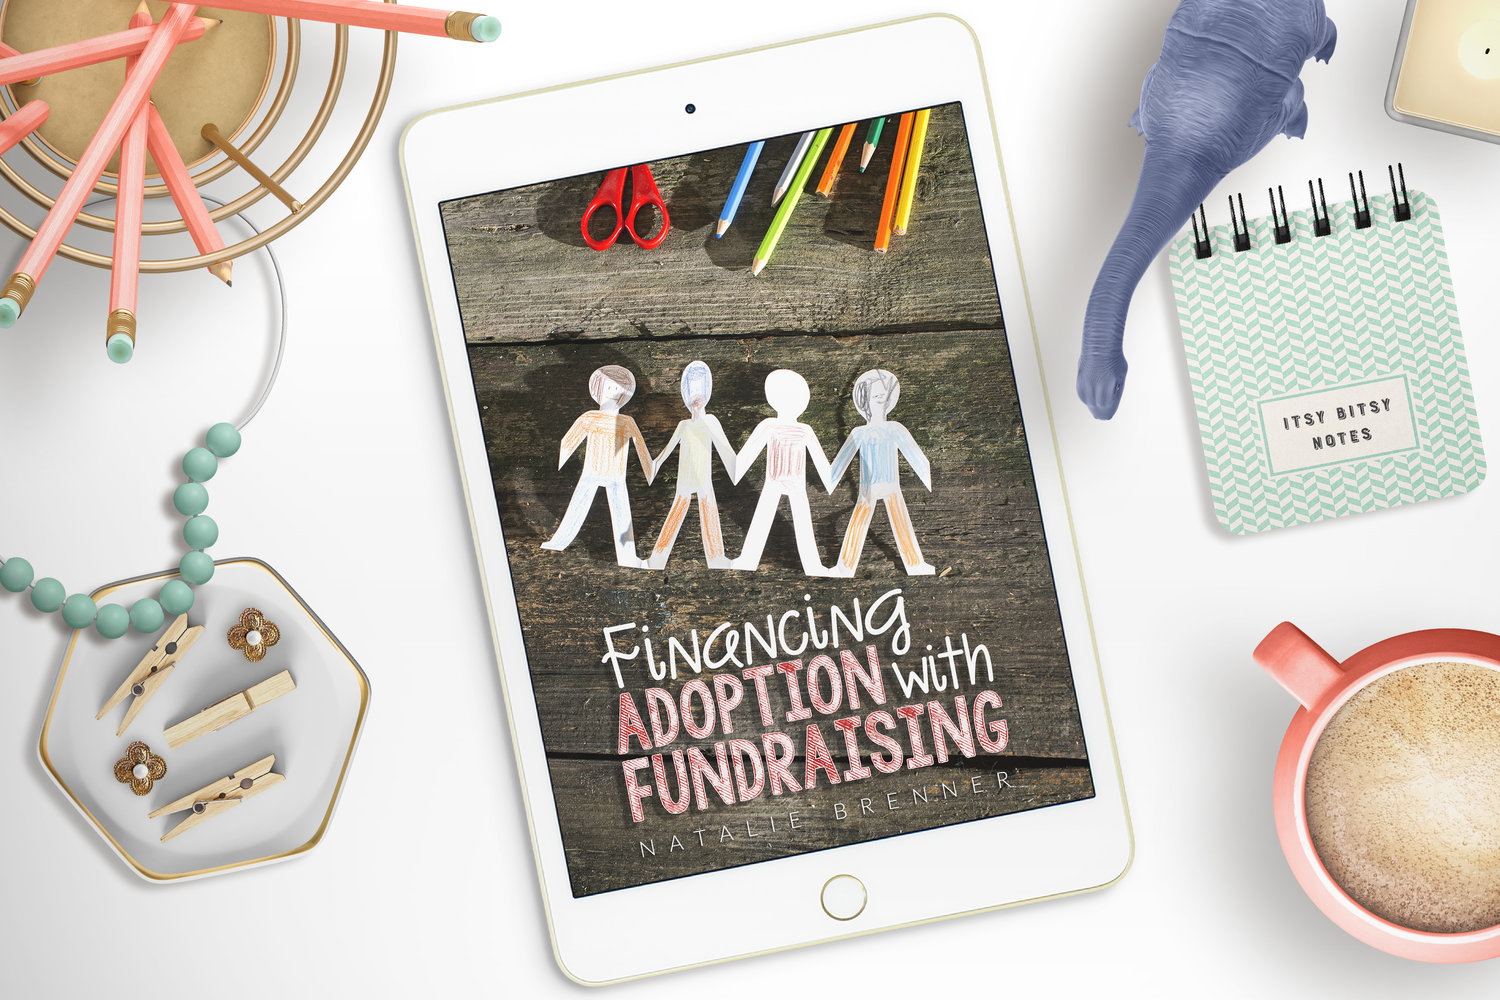 financing adoption with fundraising, fundraising guide